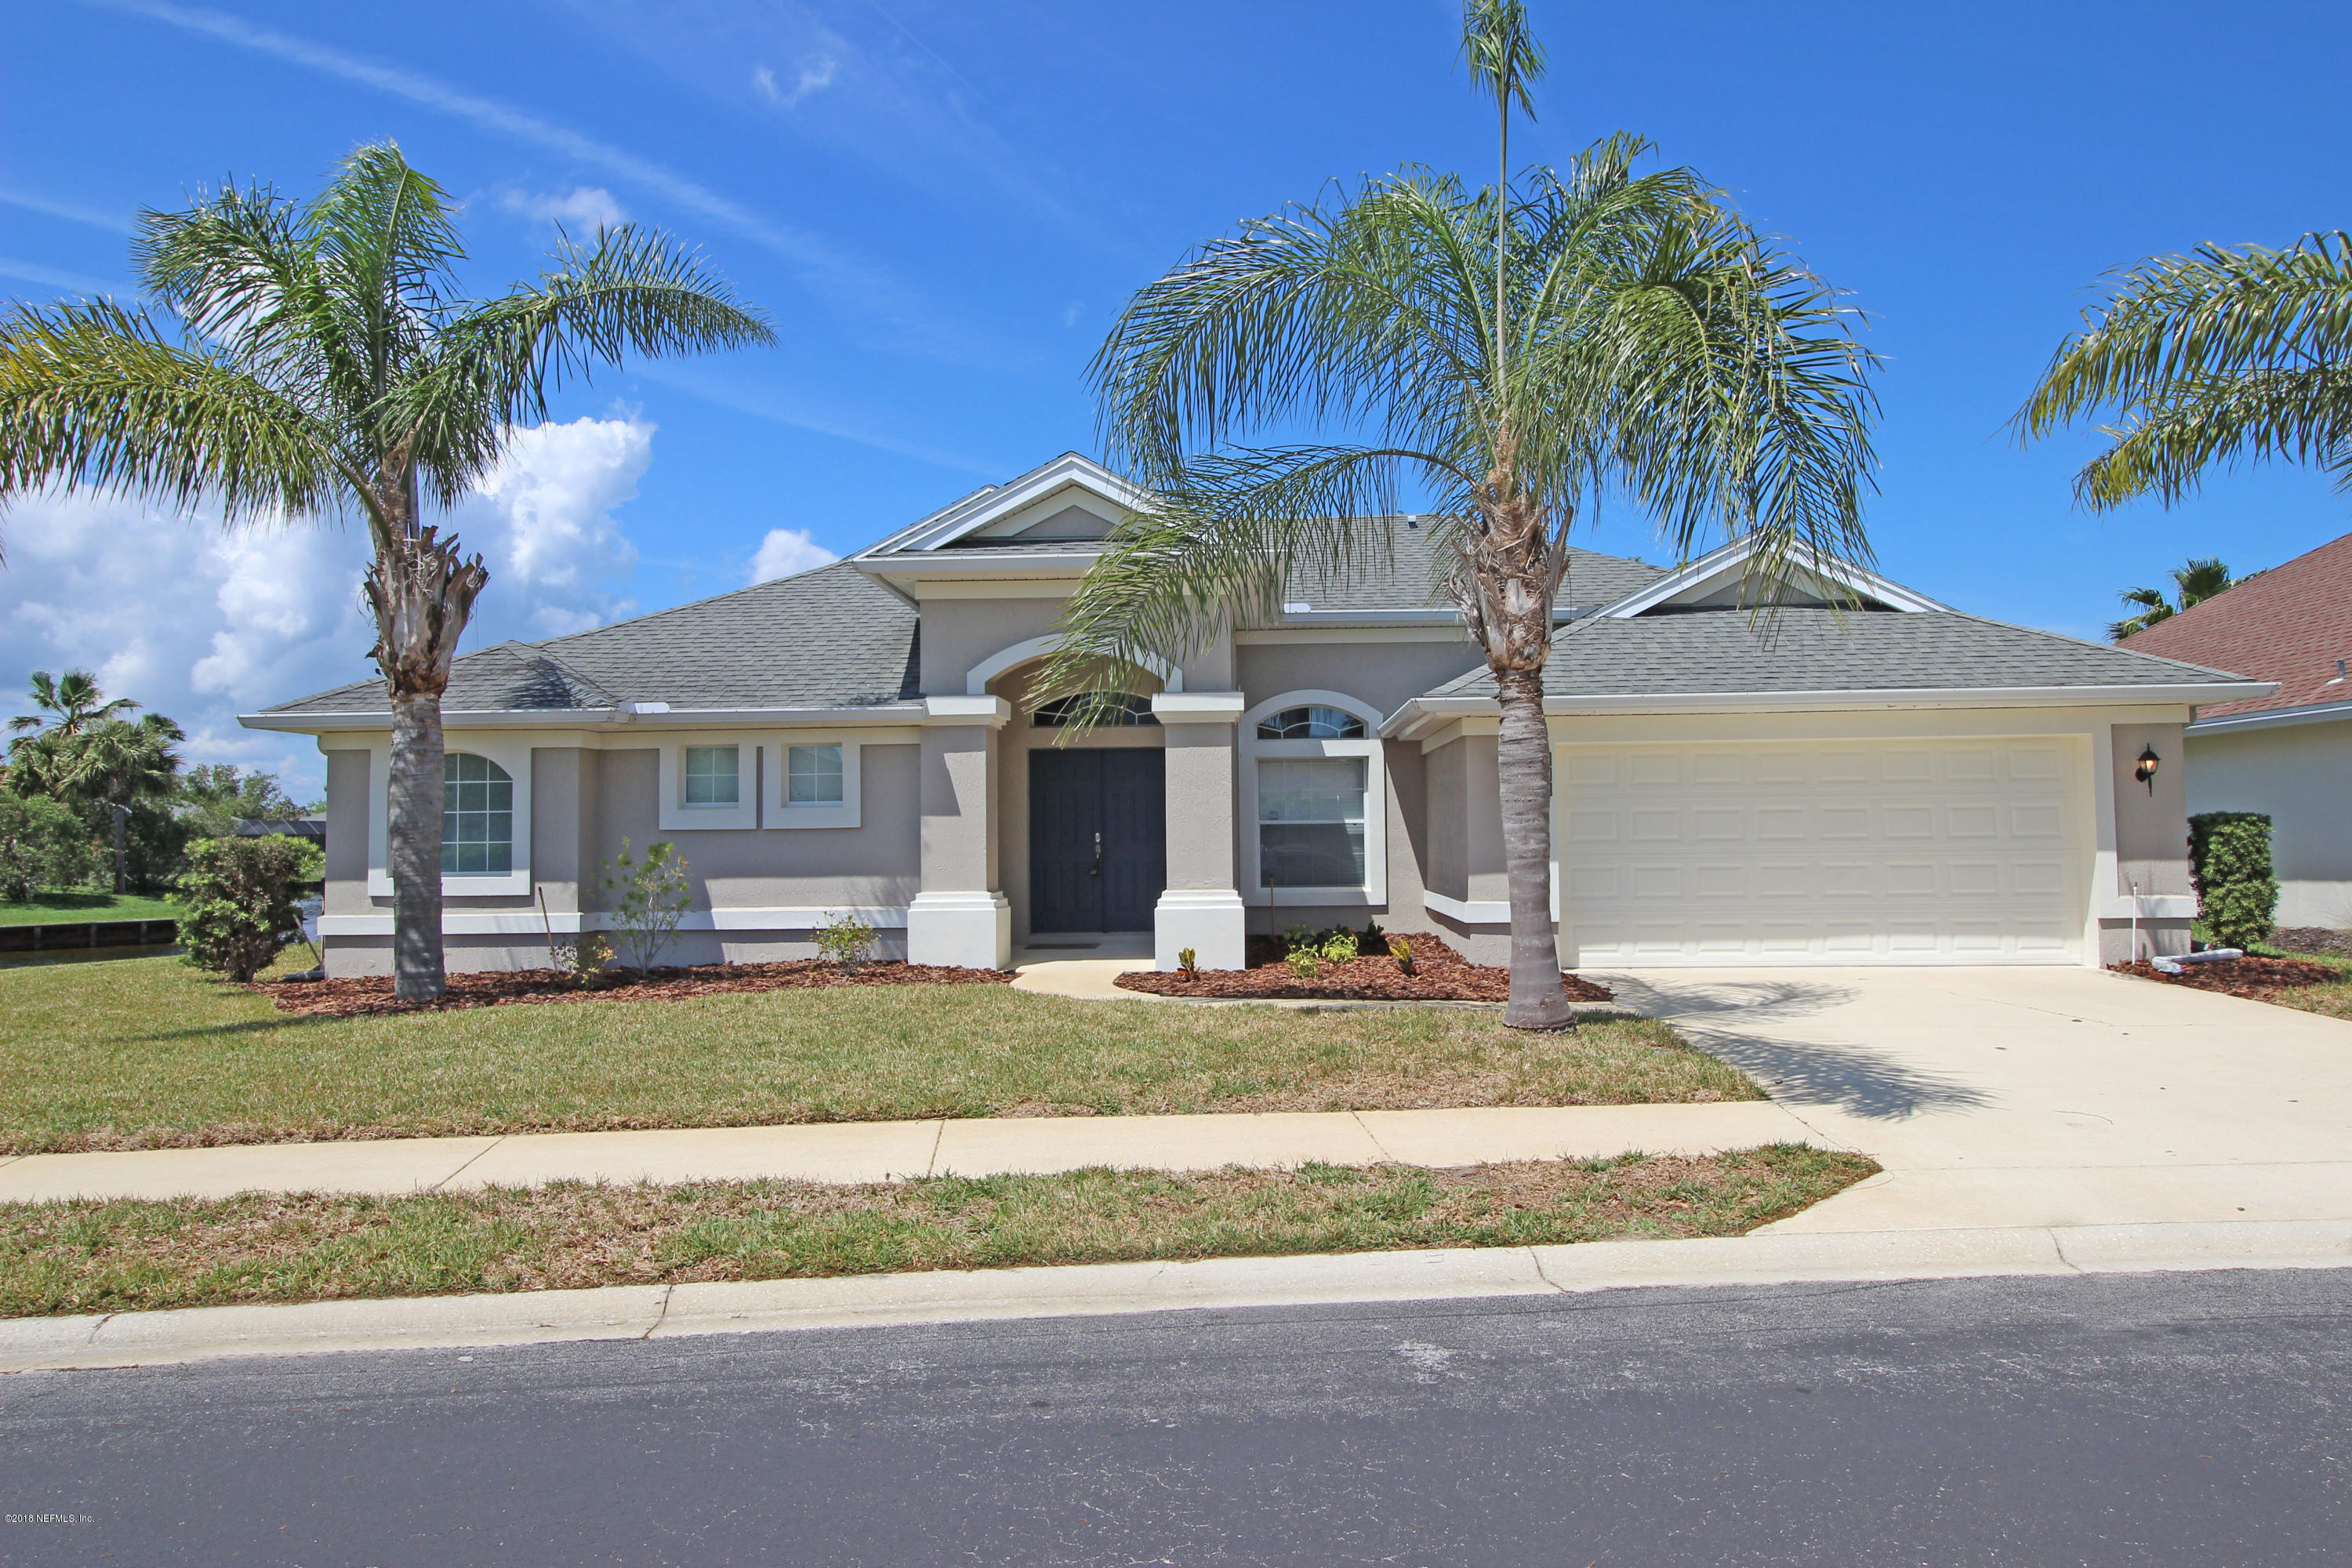 325 SAN NICOLAS, ST AUGUSTINE, FLORIDA 32080, 3 Bedrooms Bedrooms, ,2 BathroomsBathrooms,Residential - single family,For sale,SAN NICOLAS,929904